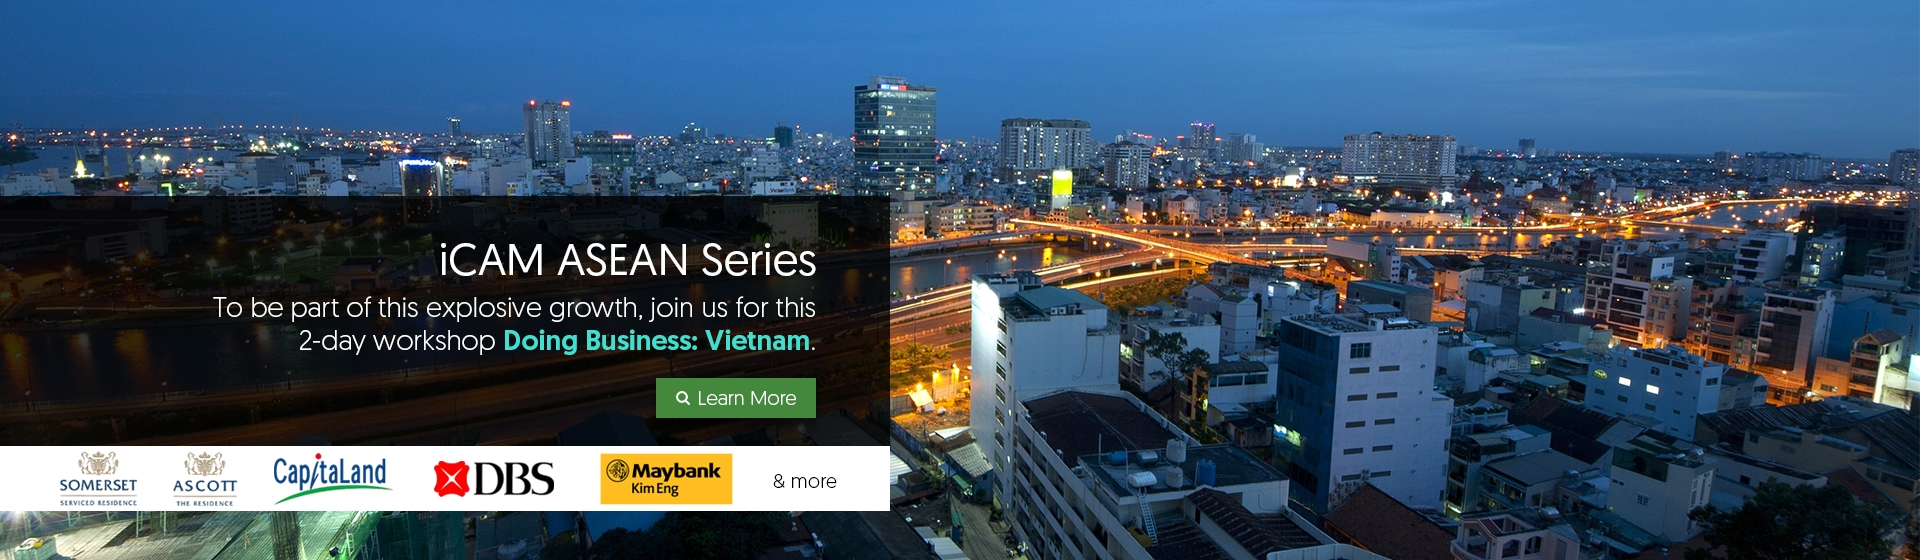 iCAM ASEAN Series - Doing Business in Vietnam